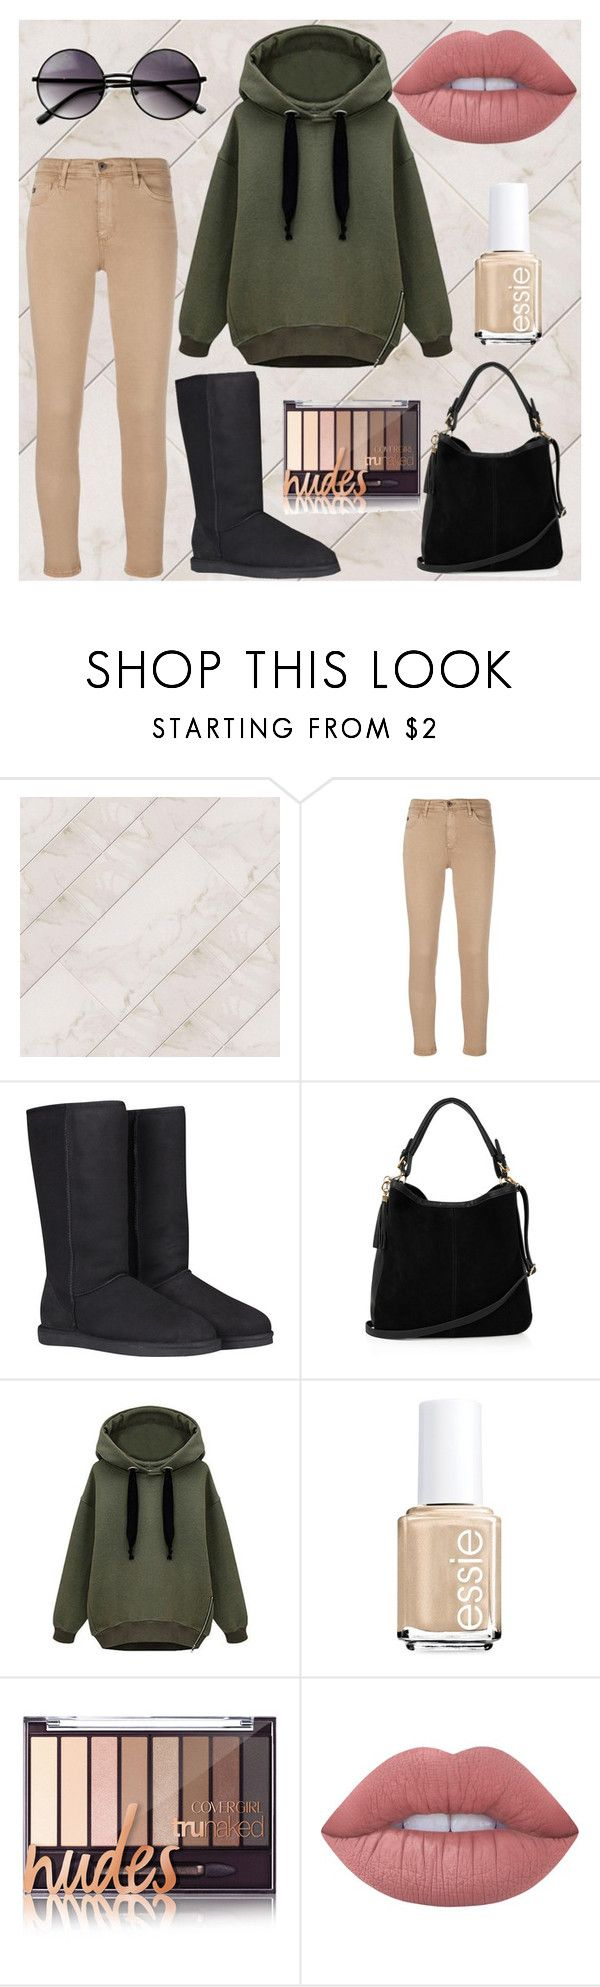 """""""University"""" by rominajavierafg on Polyvore featuring moda, AG Adriano Goldschmied, UGG Australia, Oasis, WithChic, Essie, Lime Crime y ZeroUV"""